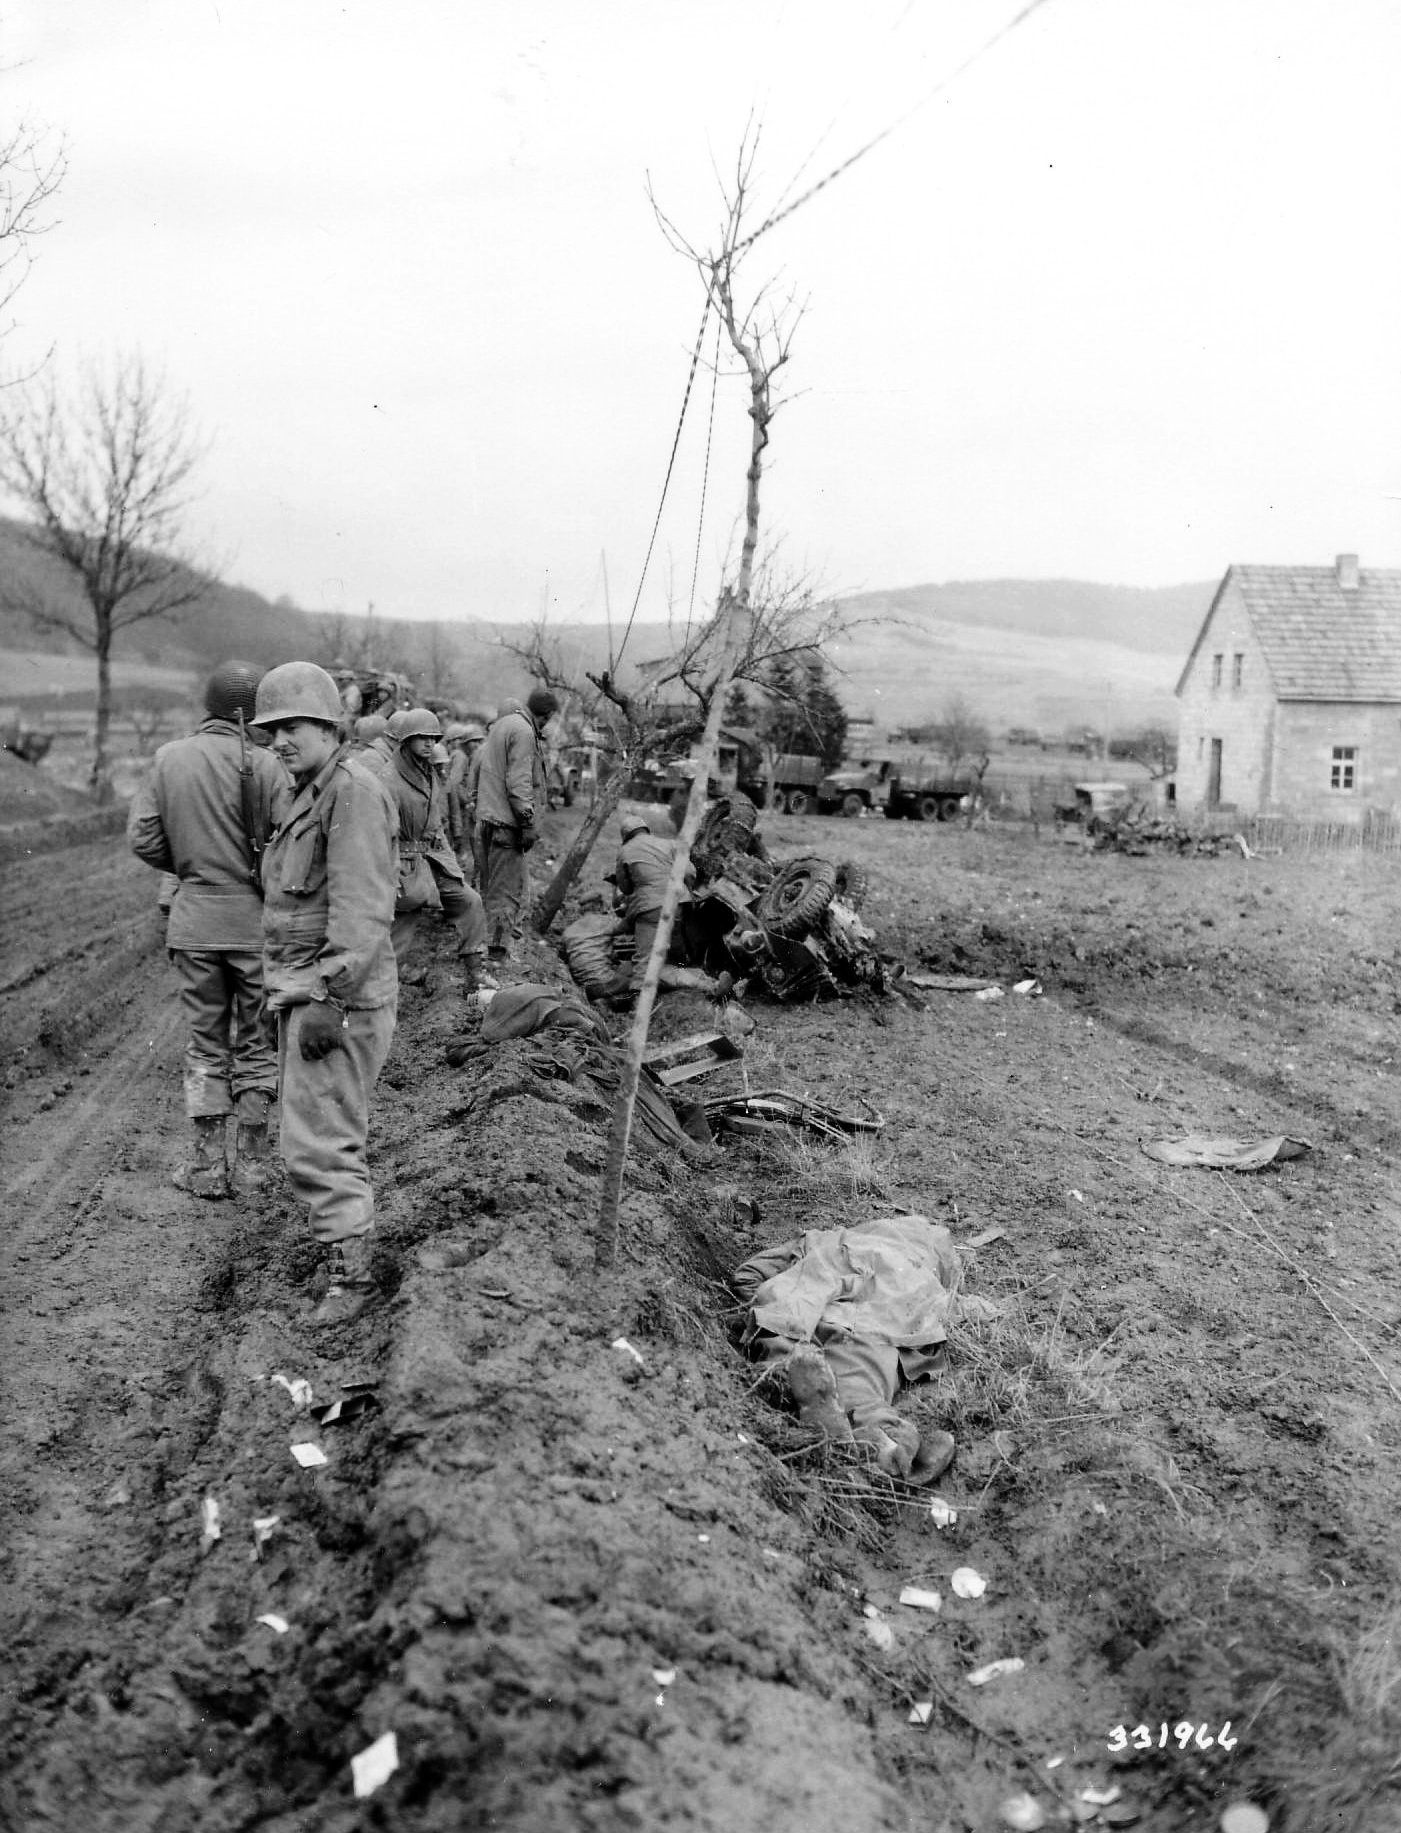 Soldiers of the US 4th Infantry Division providing first aid to the driver of a Jeep that hit a mine near Hillesheim, Germany. In the foreground lies the jeep's passenger, who died instantly, March 1945.